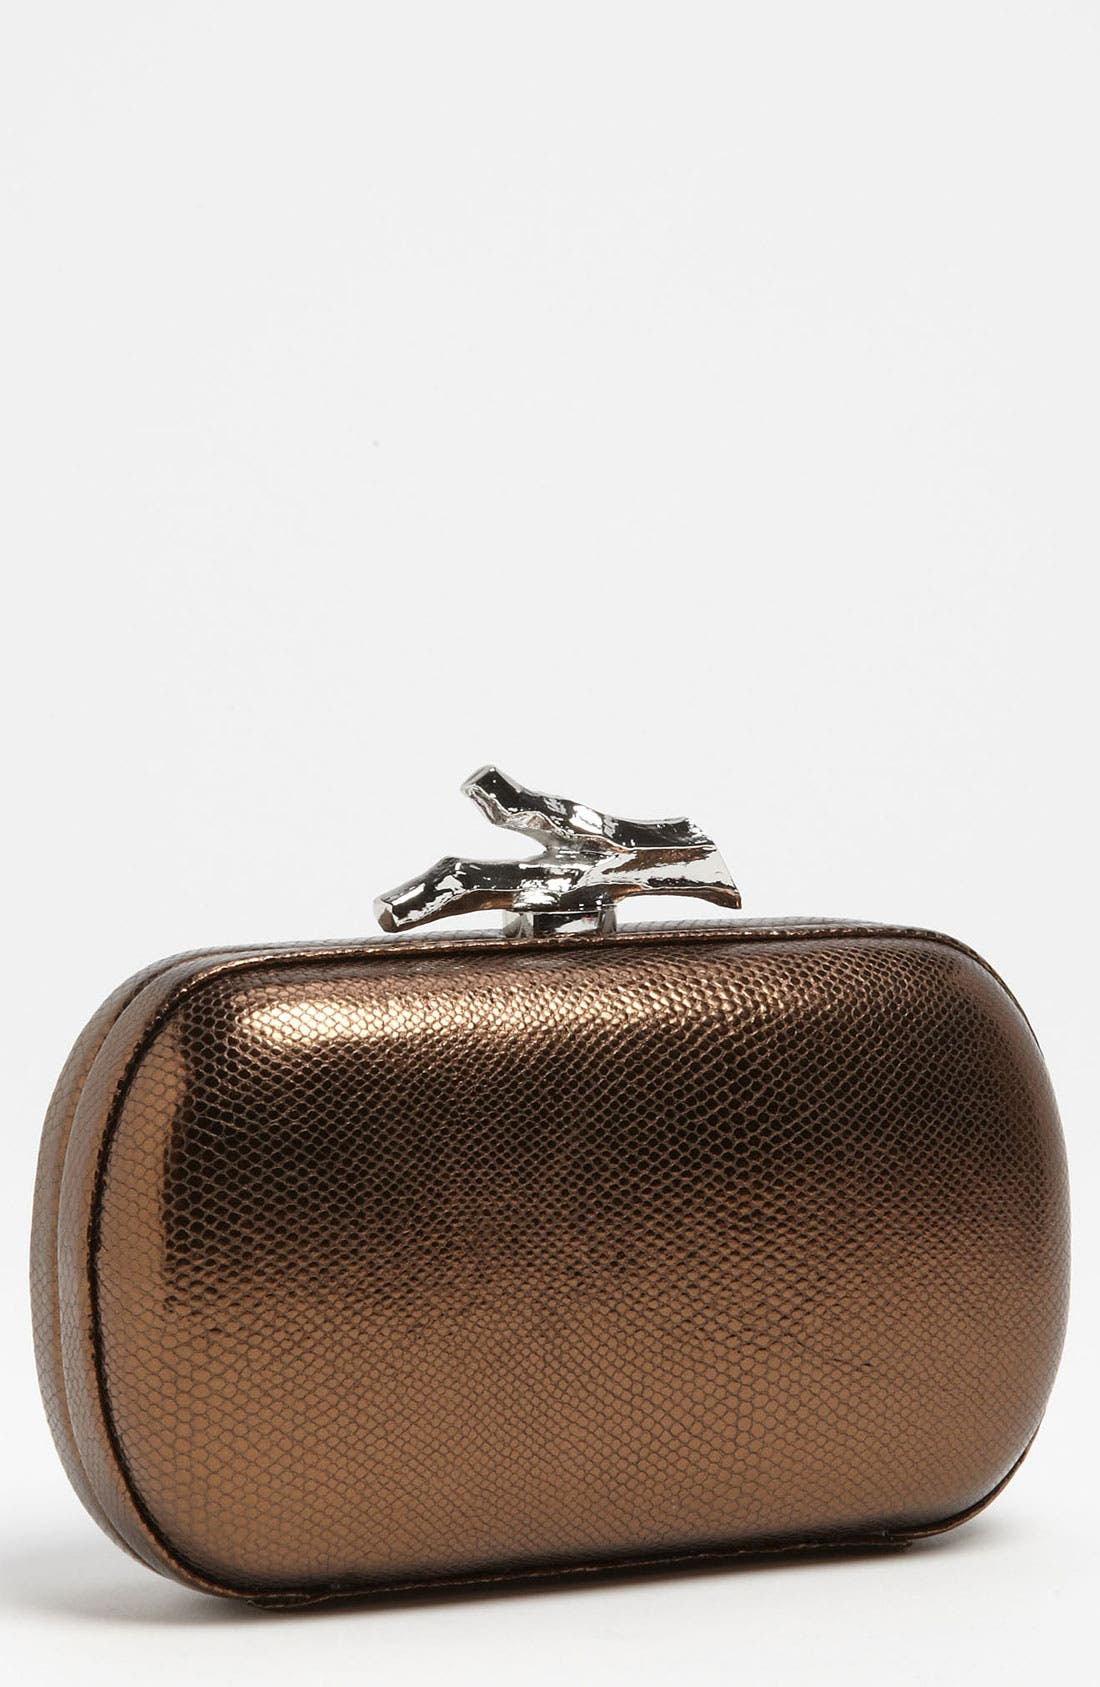 Main Image - Diane von Furstenberg 'Lytton - Small' Metallic Leather Clutch